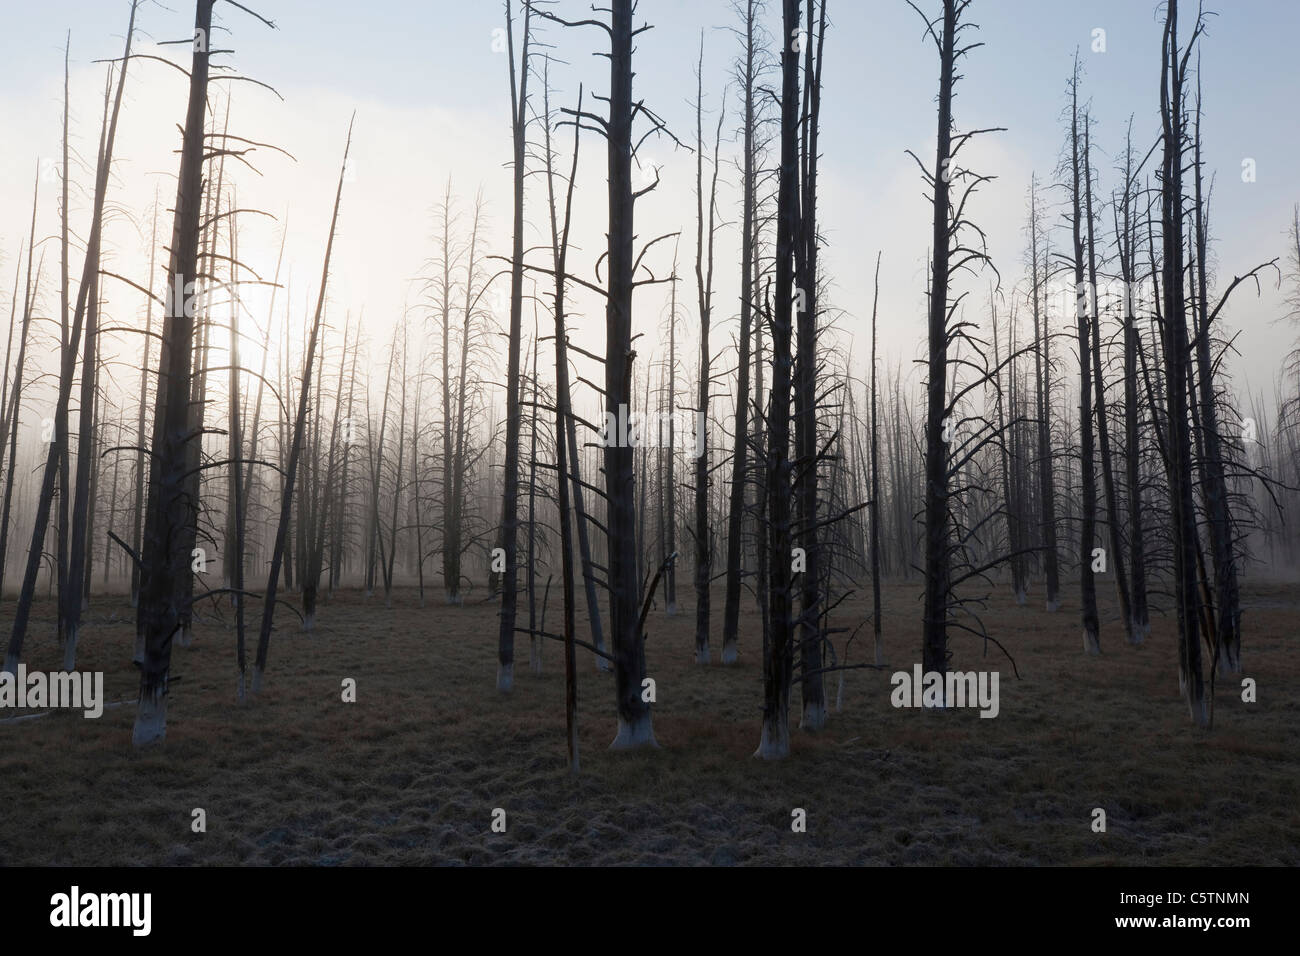 USA, Yellowstone Park, Dead trees in misty landscape - Stock Image